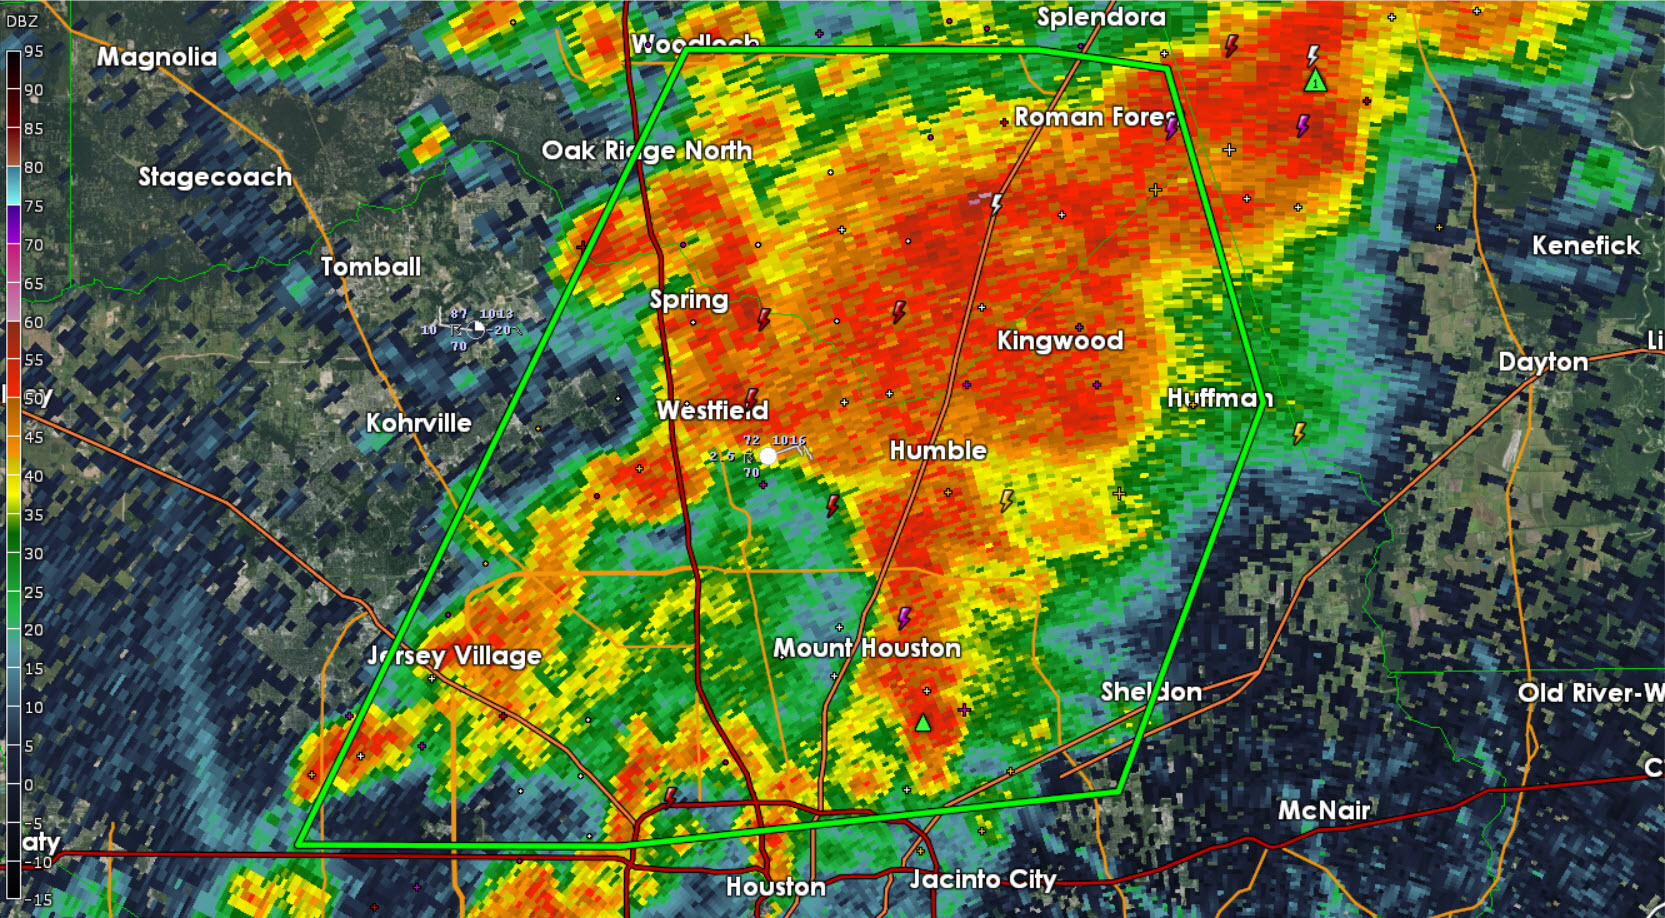 Flash Flood Warning: Harris, Montgomery Counties until 6:30 PM ...